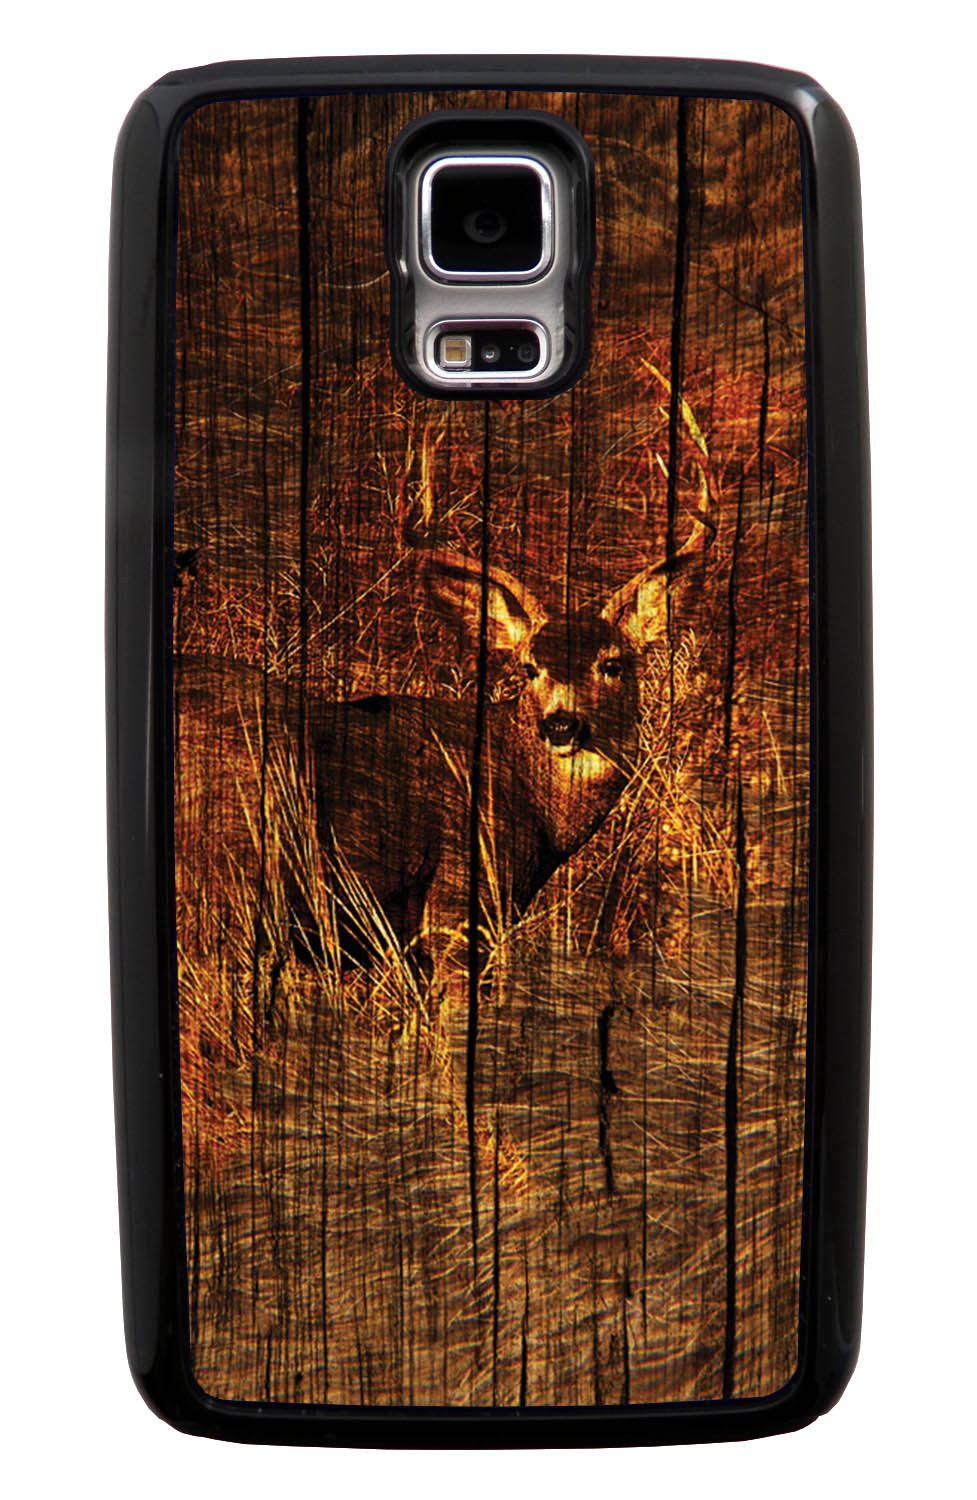 Samsung Galaxy S5 / SV Deer Case - Deer Photo with Wood Overlay